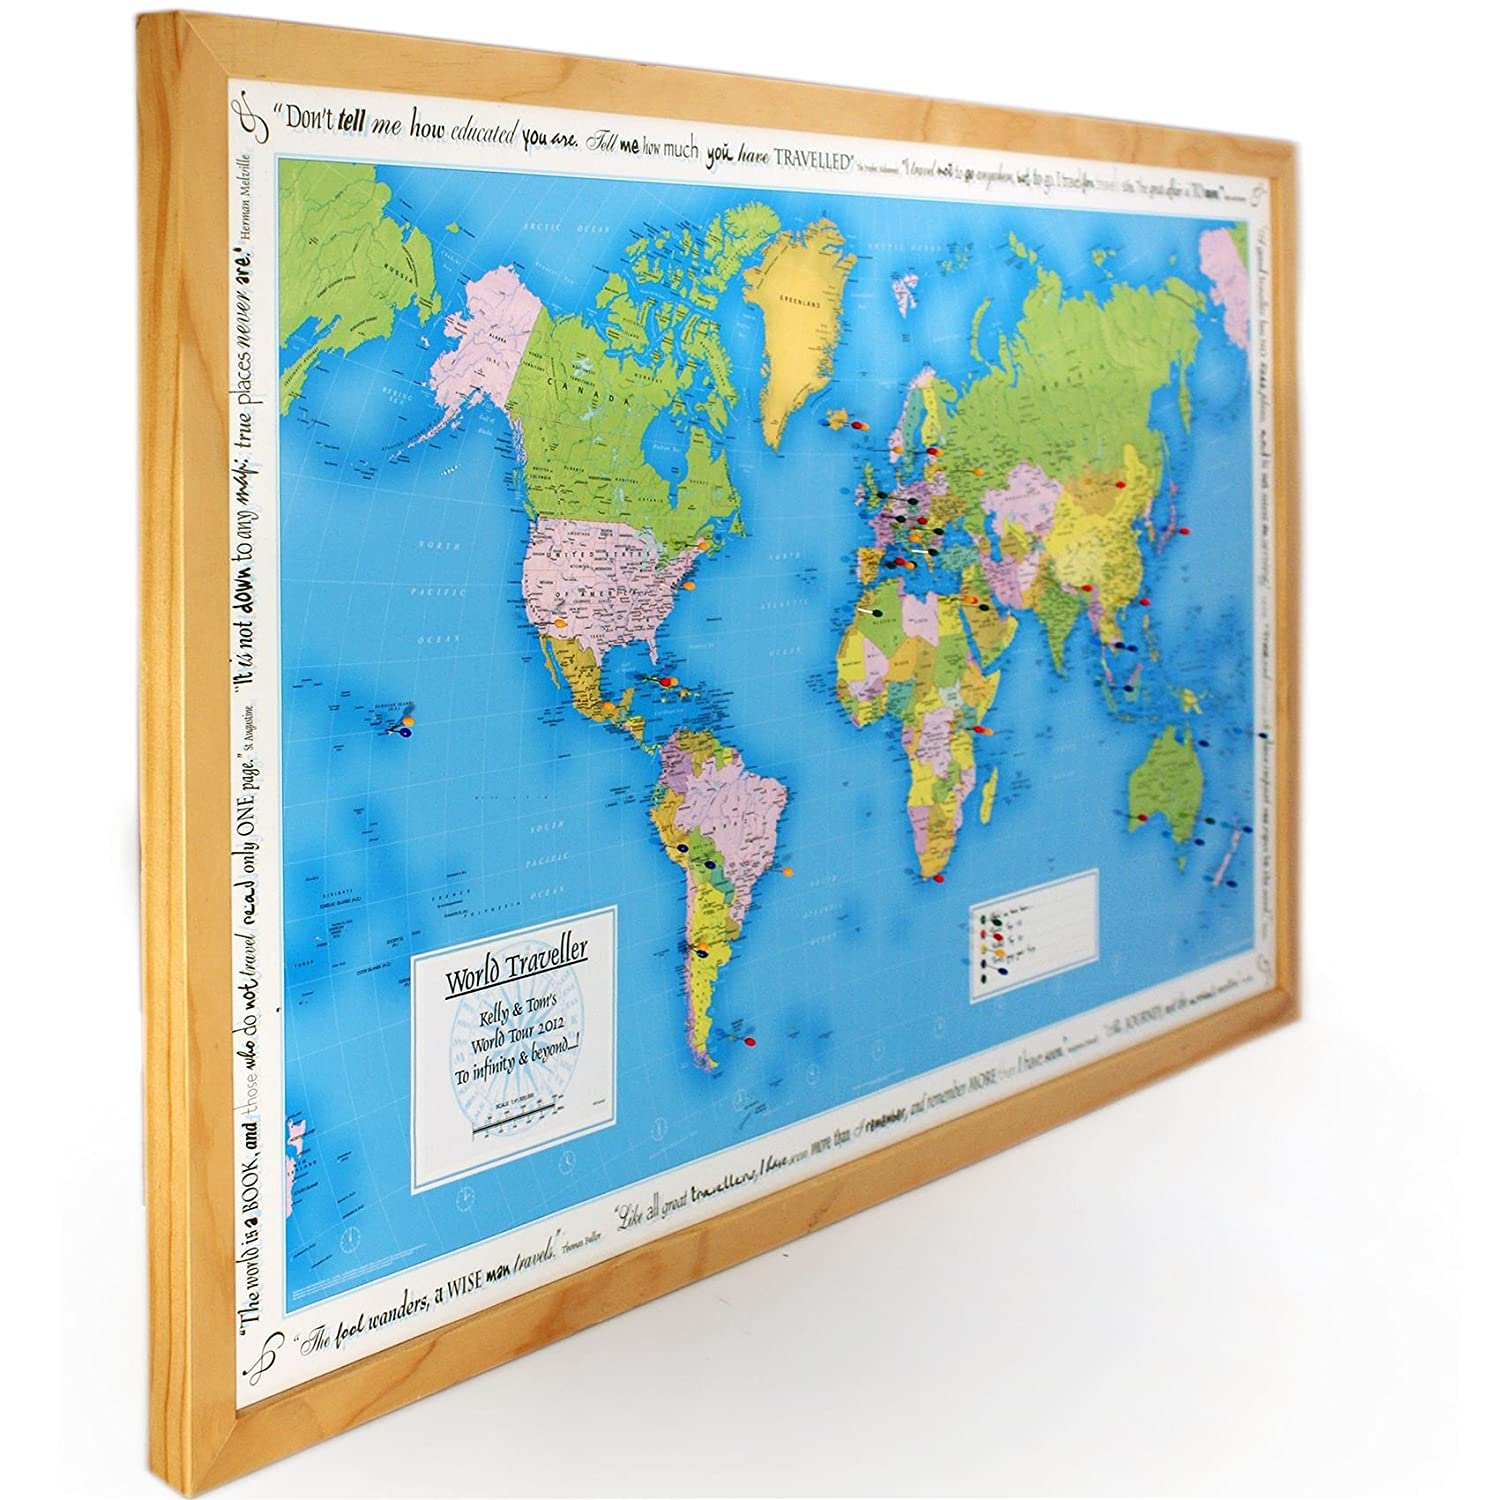 Personalised World Traveller Map in dark wood Amazoncouk – Personalized World Traveler Map Set